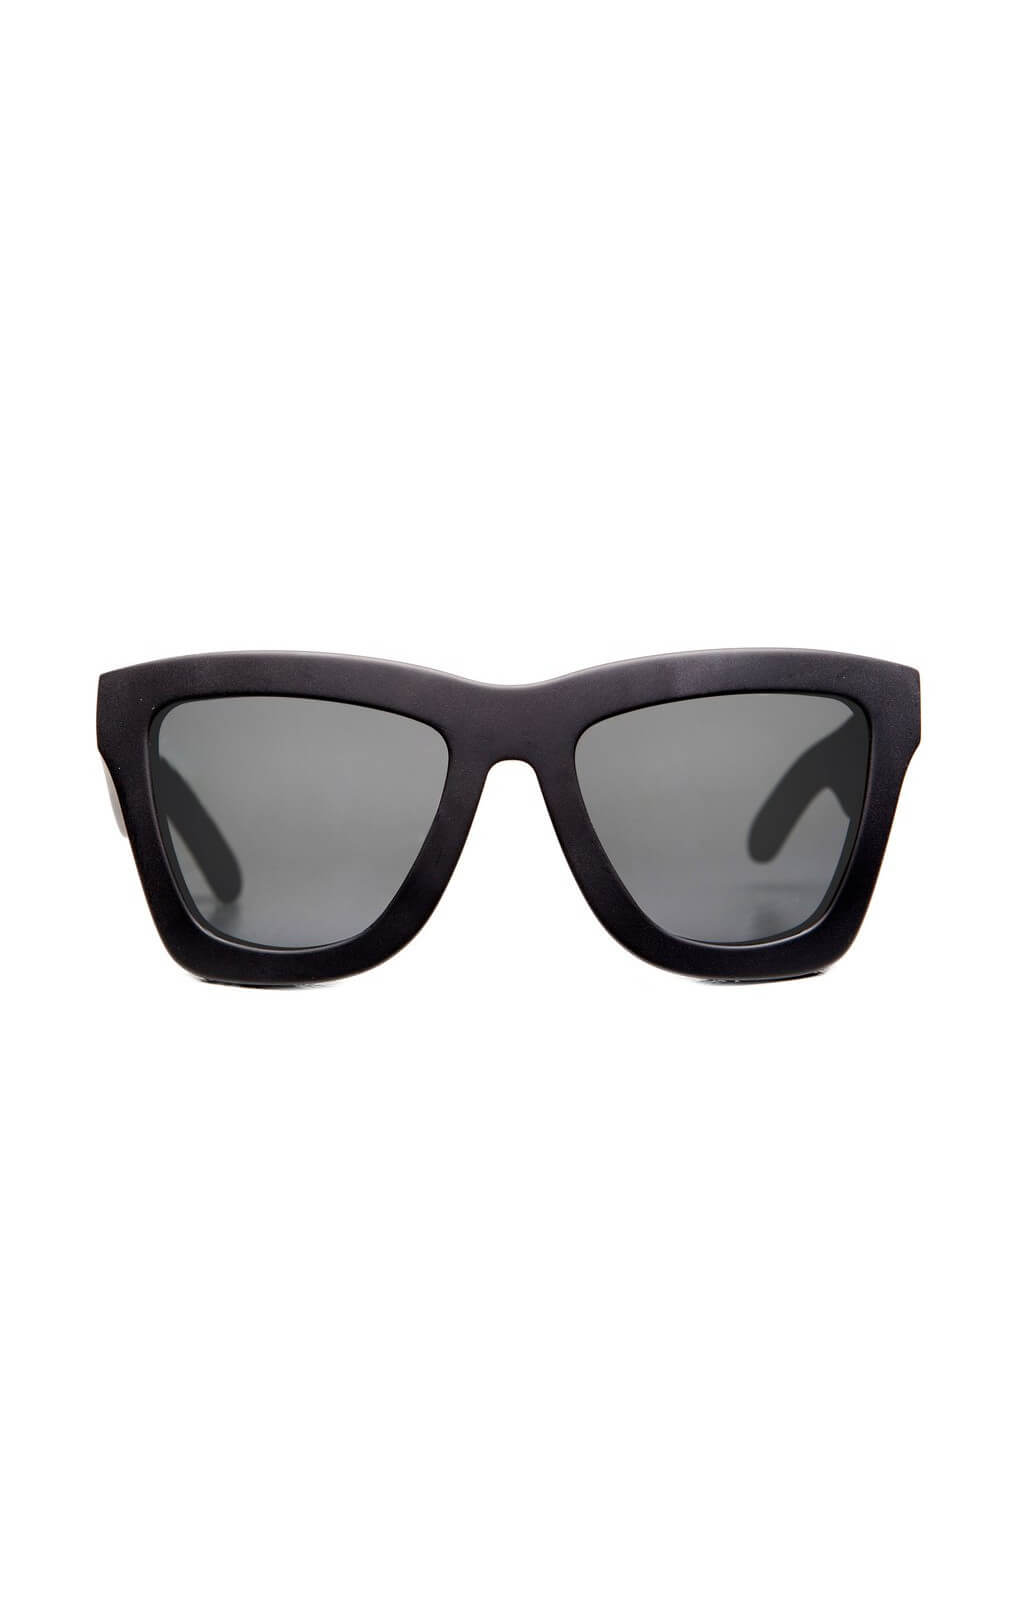 valley db sunglasses matte black